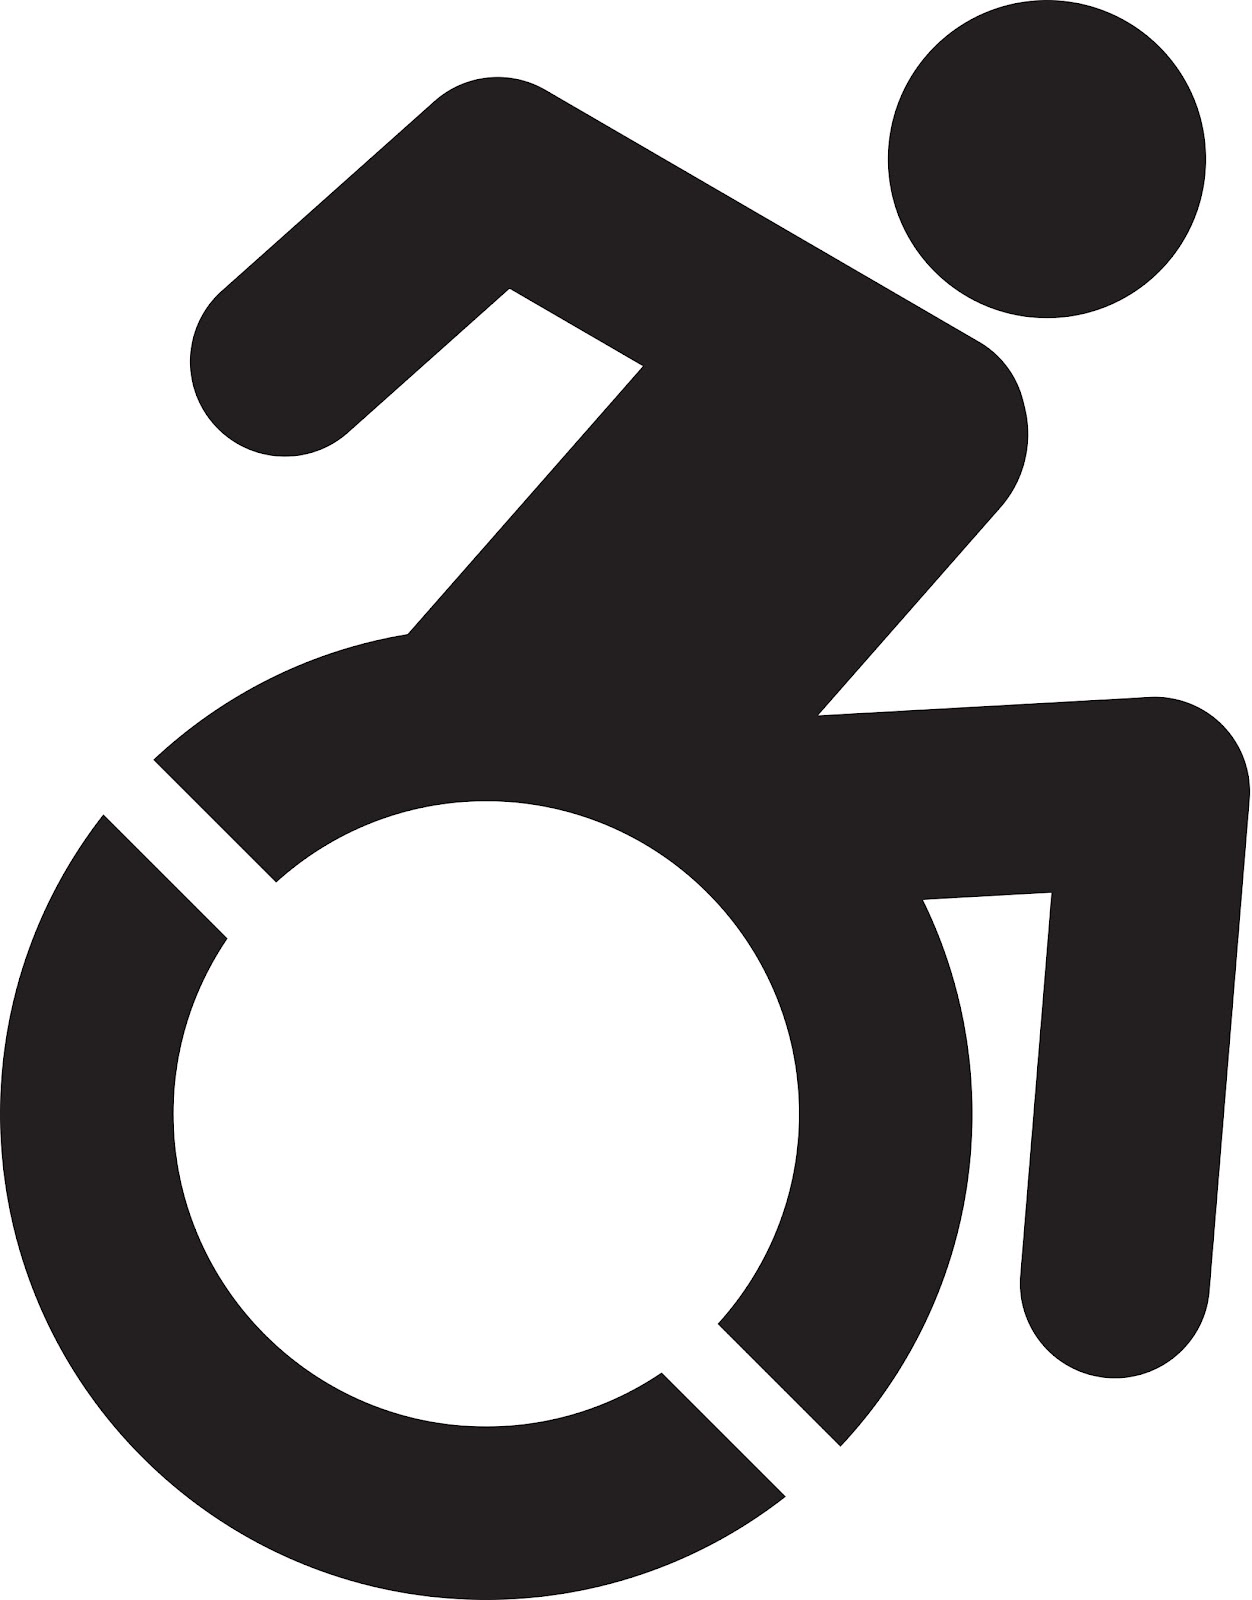 accessibility20icon_final.jpg